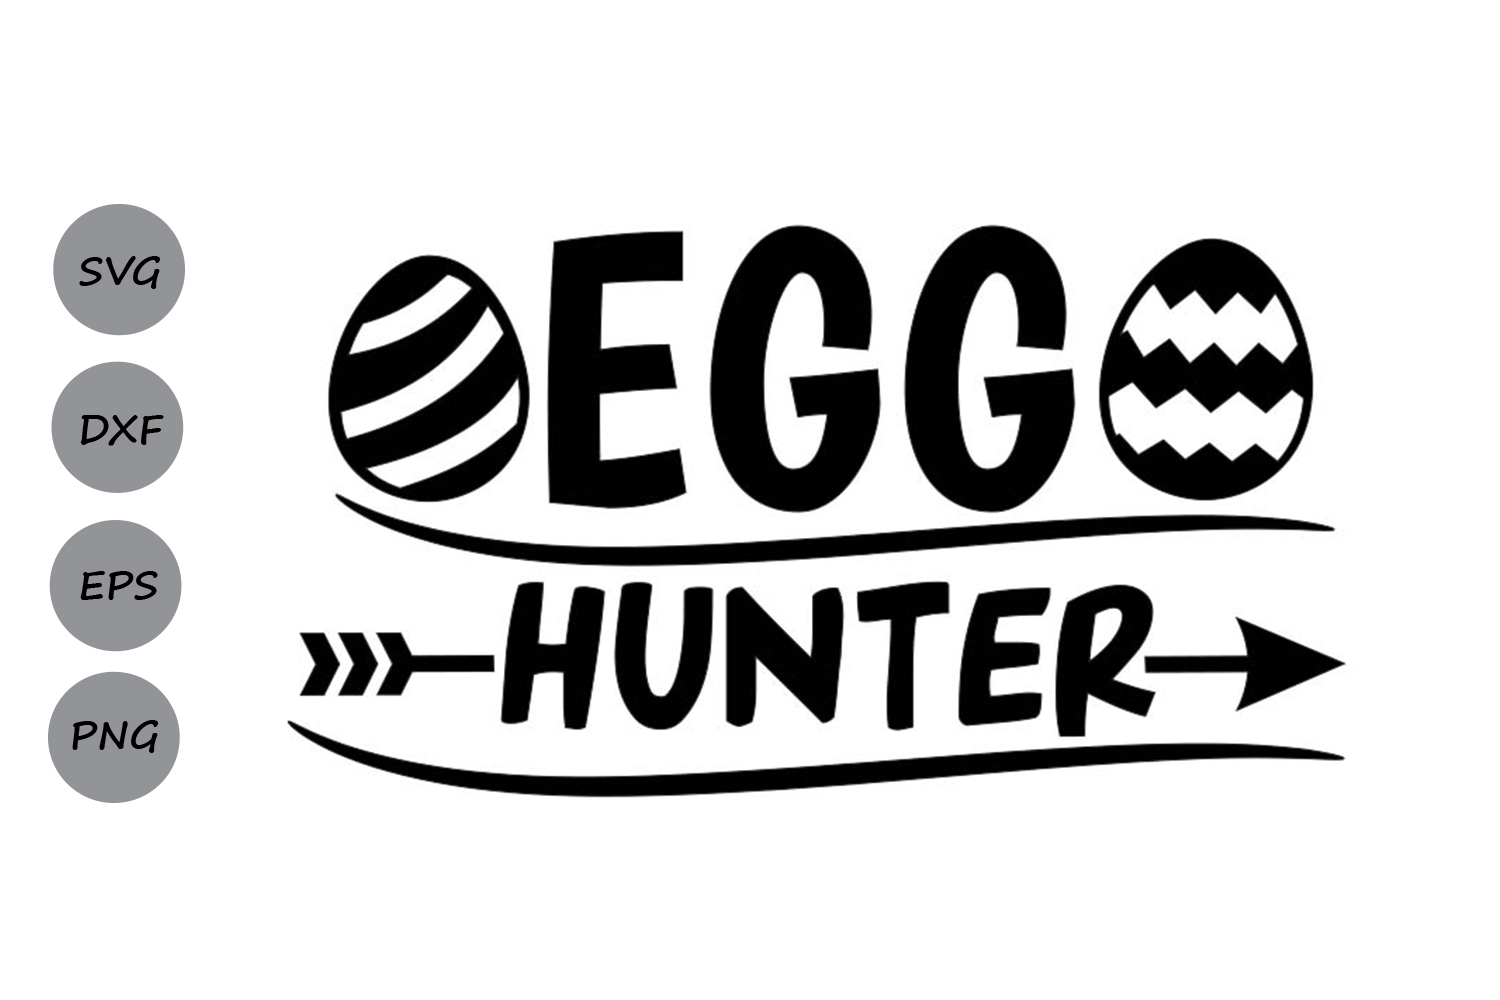 Download Free Egg Hunter Svg Graphic By Cosmosfineart Creative Fabrica for Cricut Explore, Silhouette and other cutting machines.